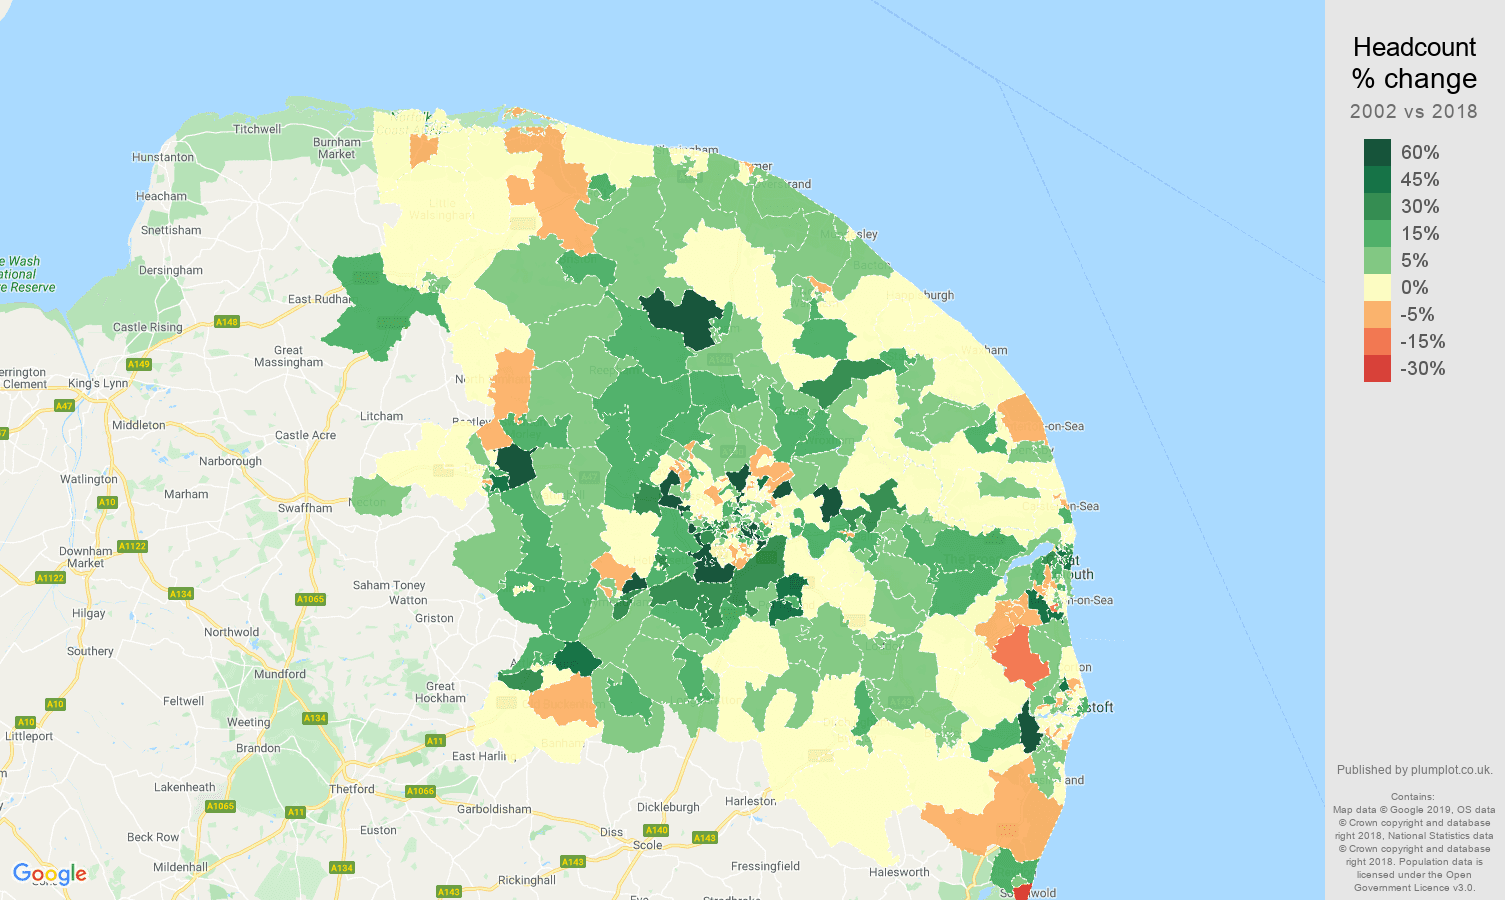 Norwich headcount change map